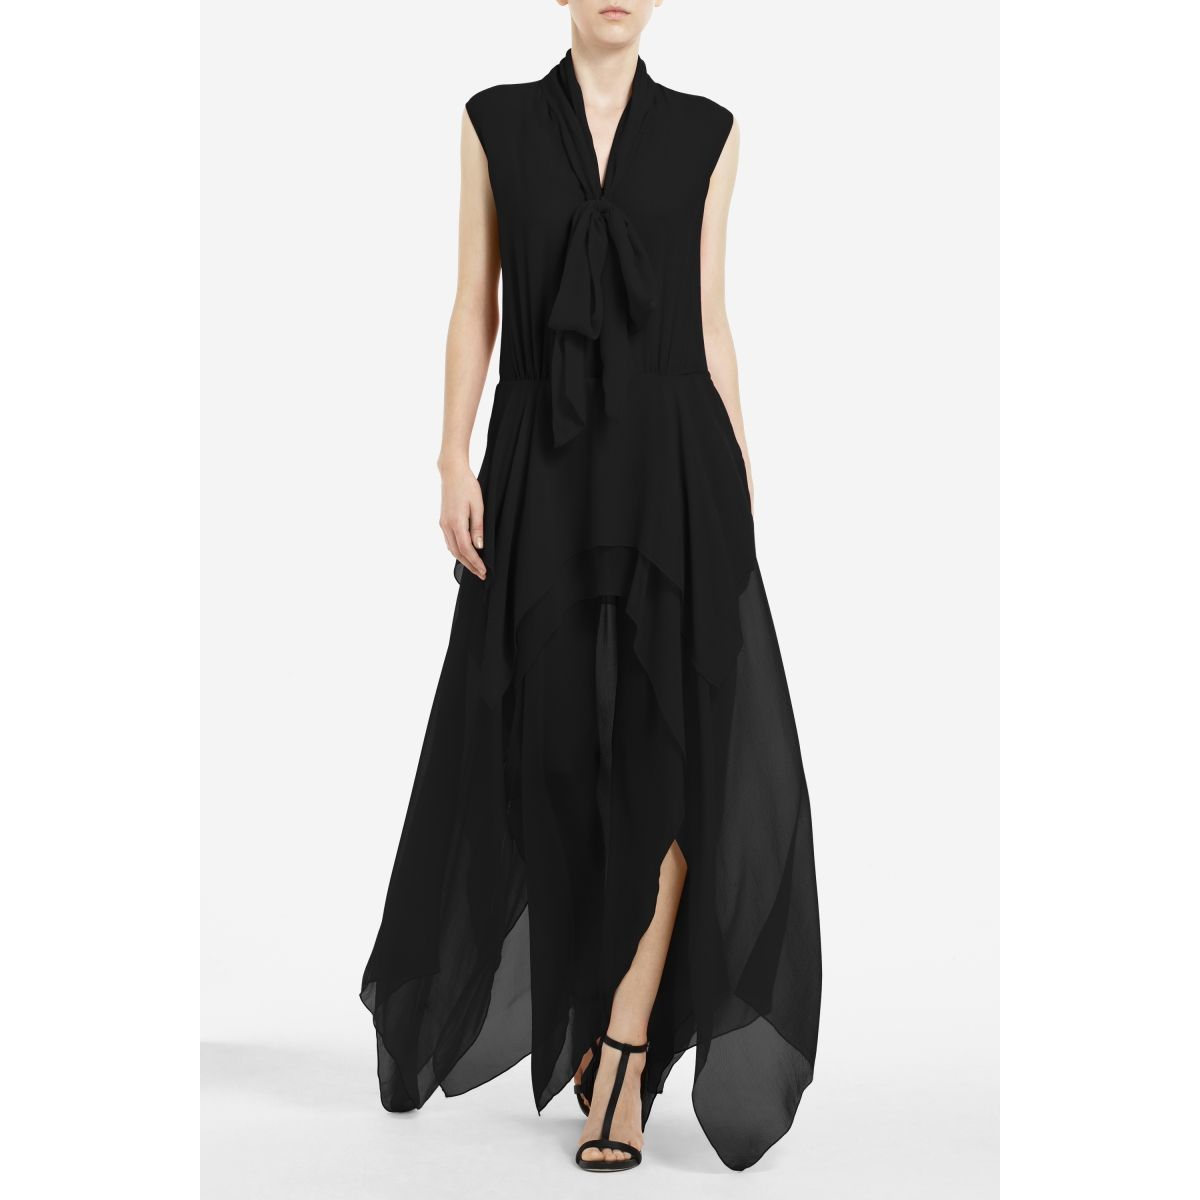 SALE. Basha Tie-Neck Evening Gown at BCBG was $398.00 now $278.60 ...